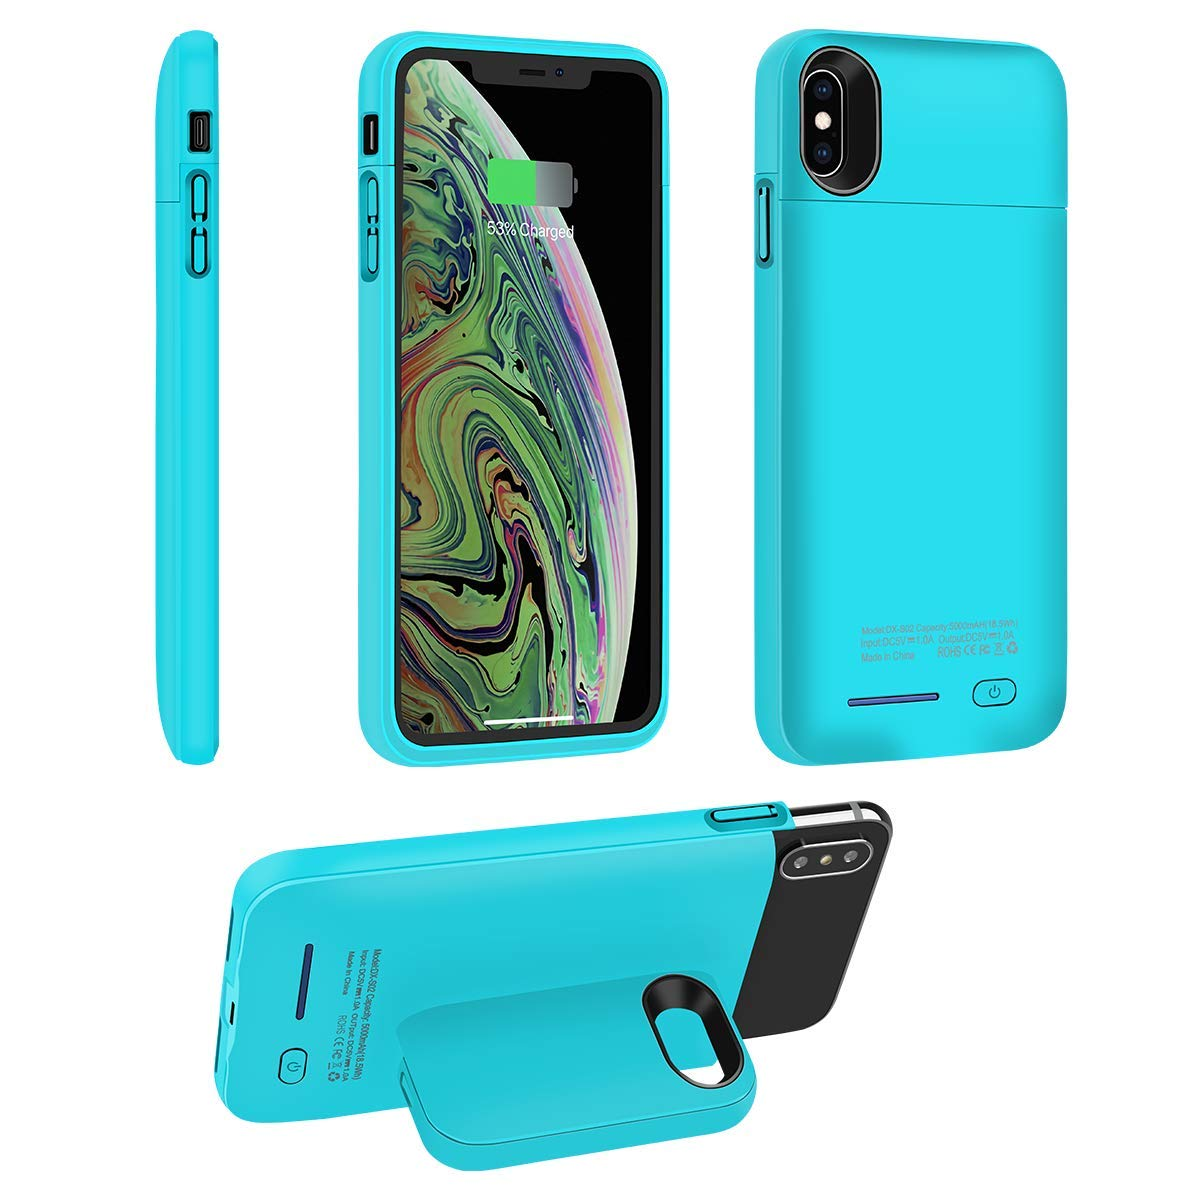 Funda Con Bateria de 5000mah para Apple Iphone Xs Max I.VALUX [7NZ9NS32]